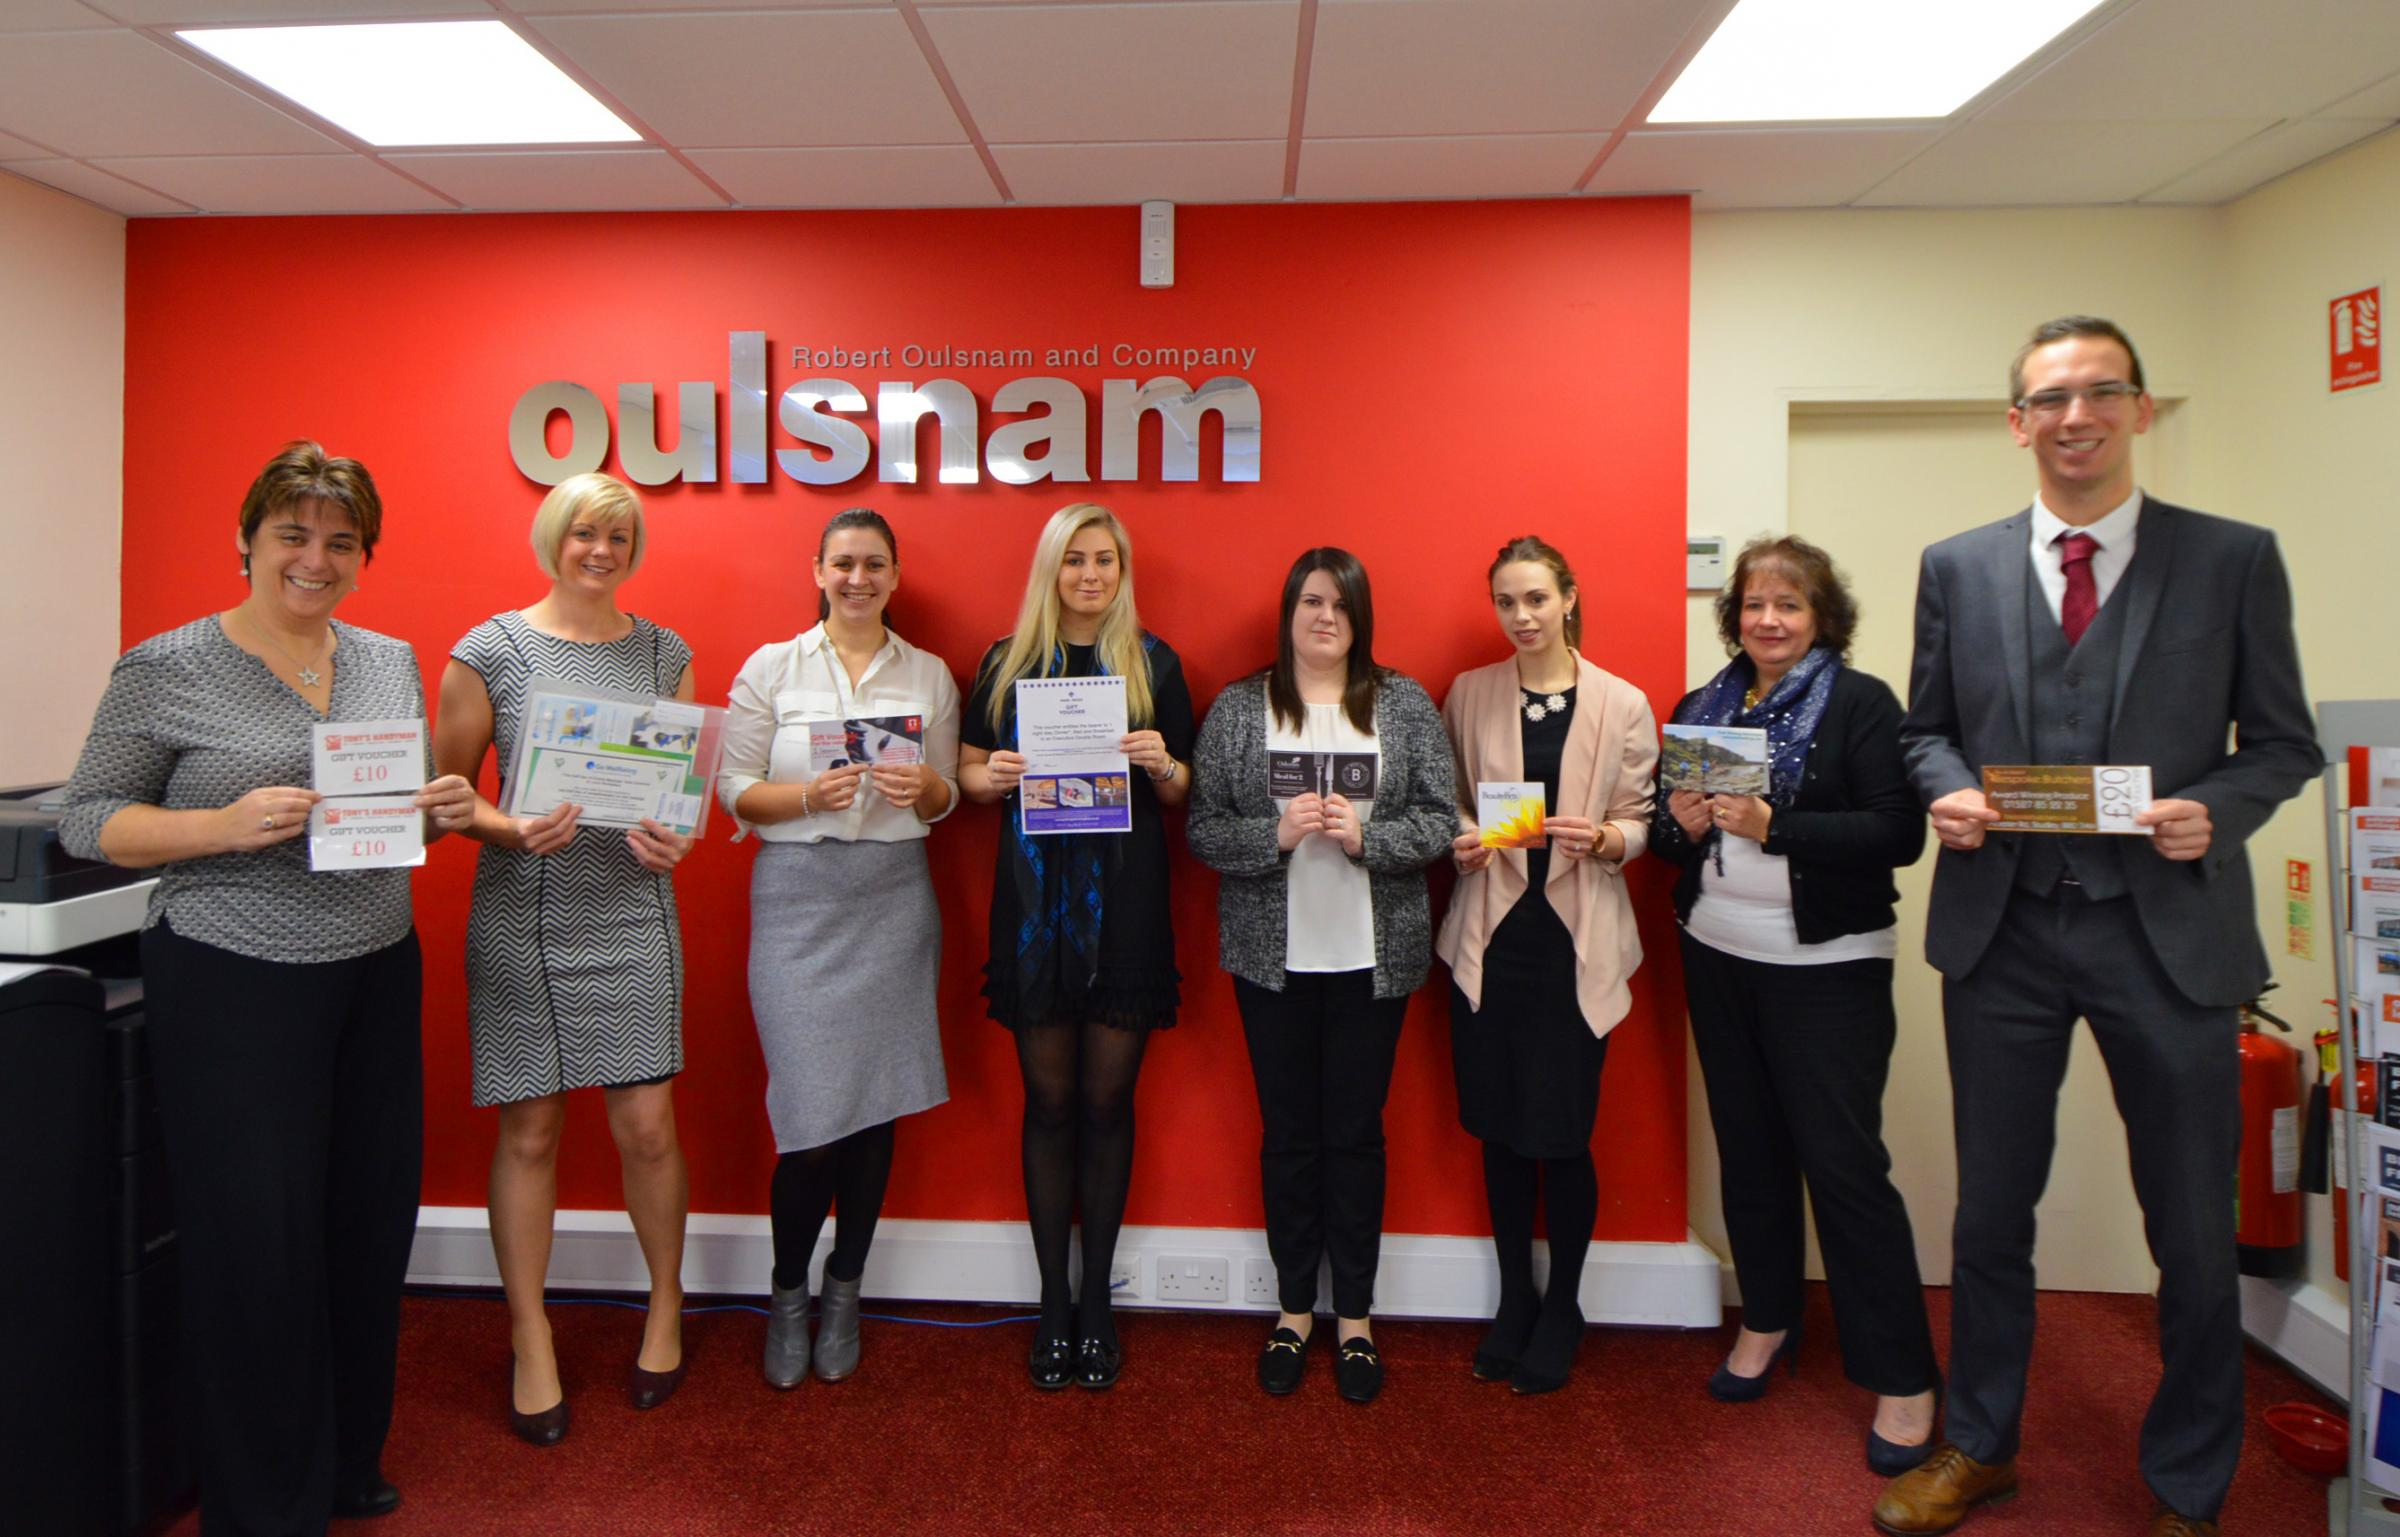 AUCTION: Staff at Oulsnam Lettings in Barnt Green holding up some of the donated gifts